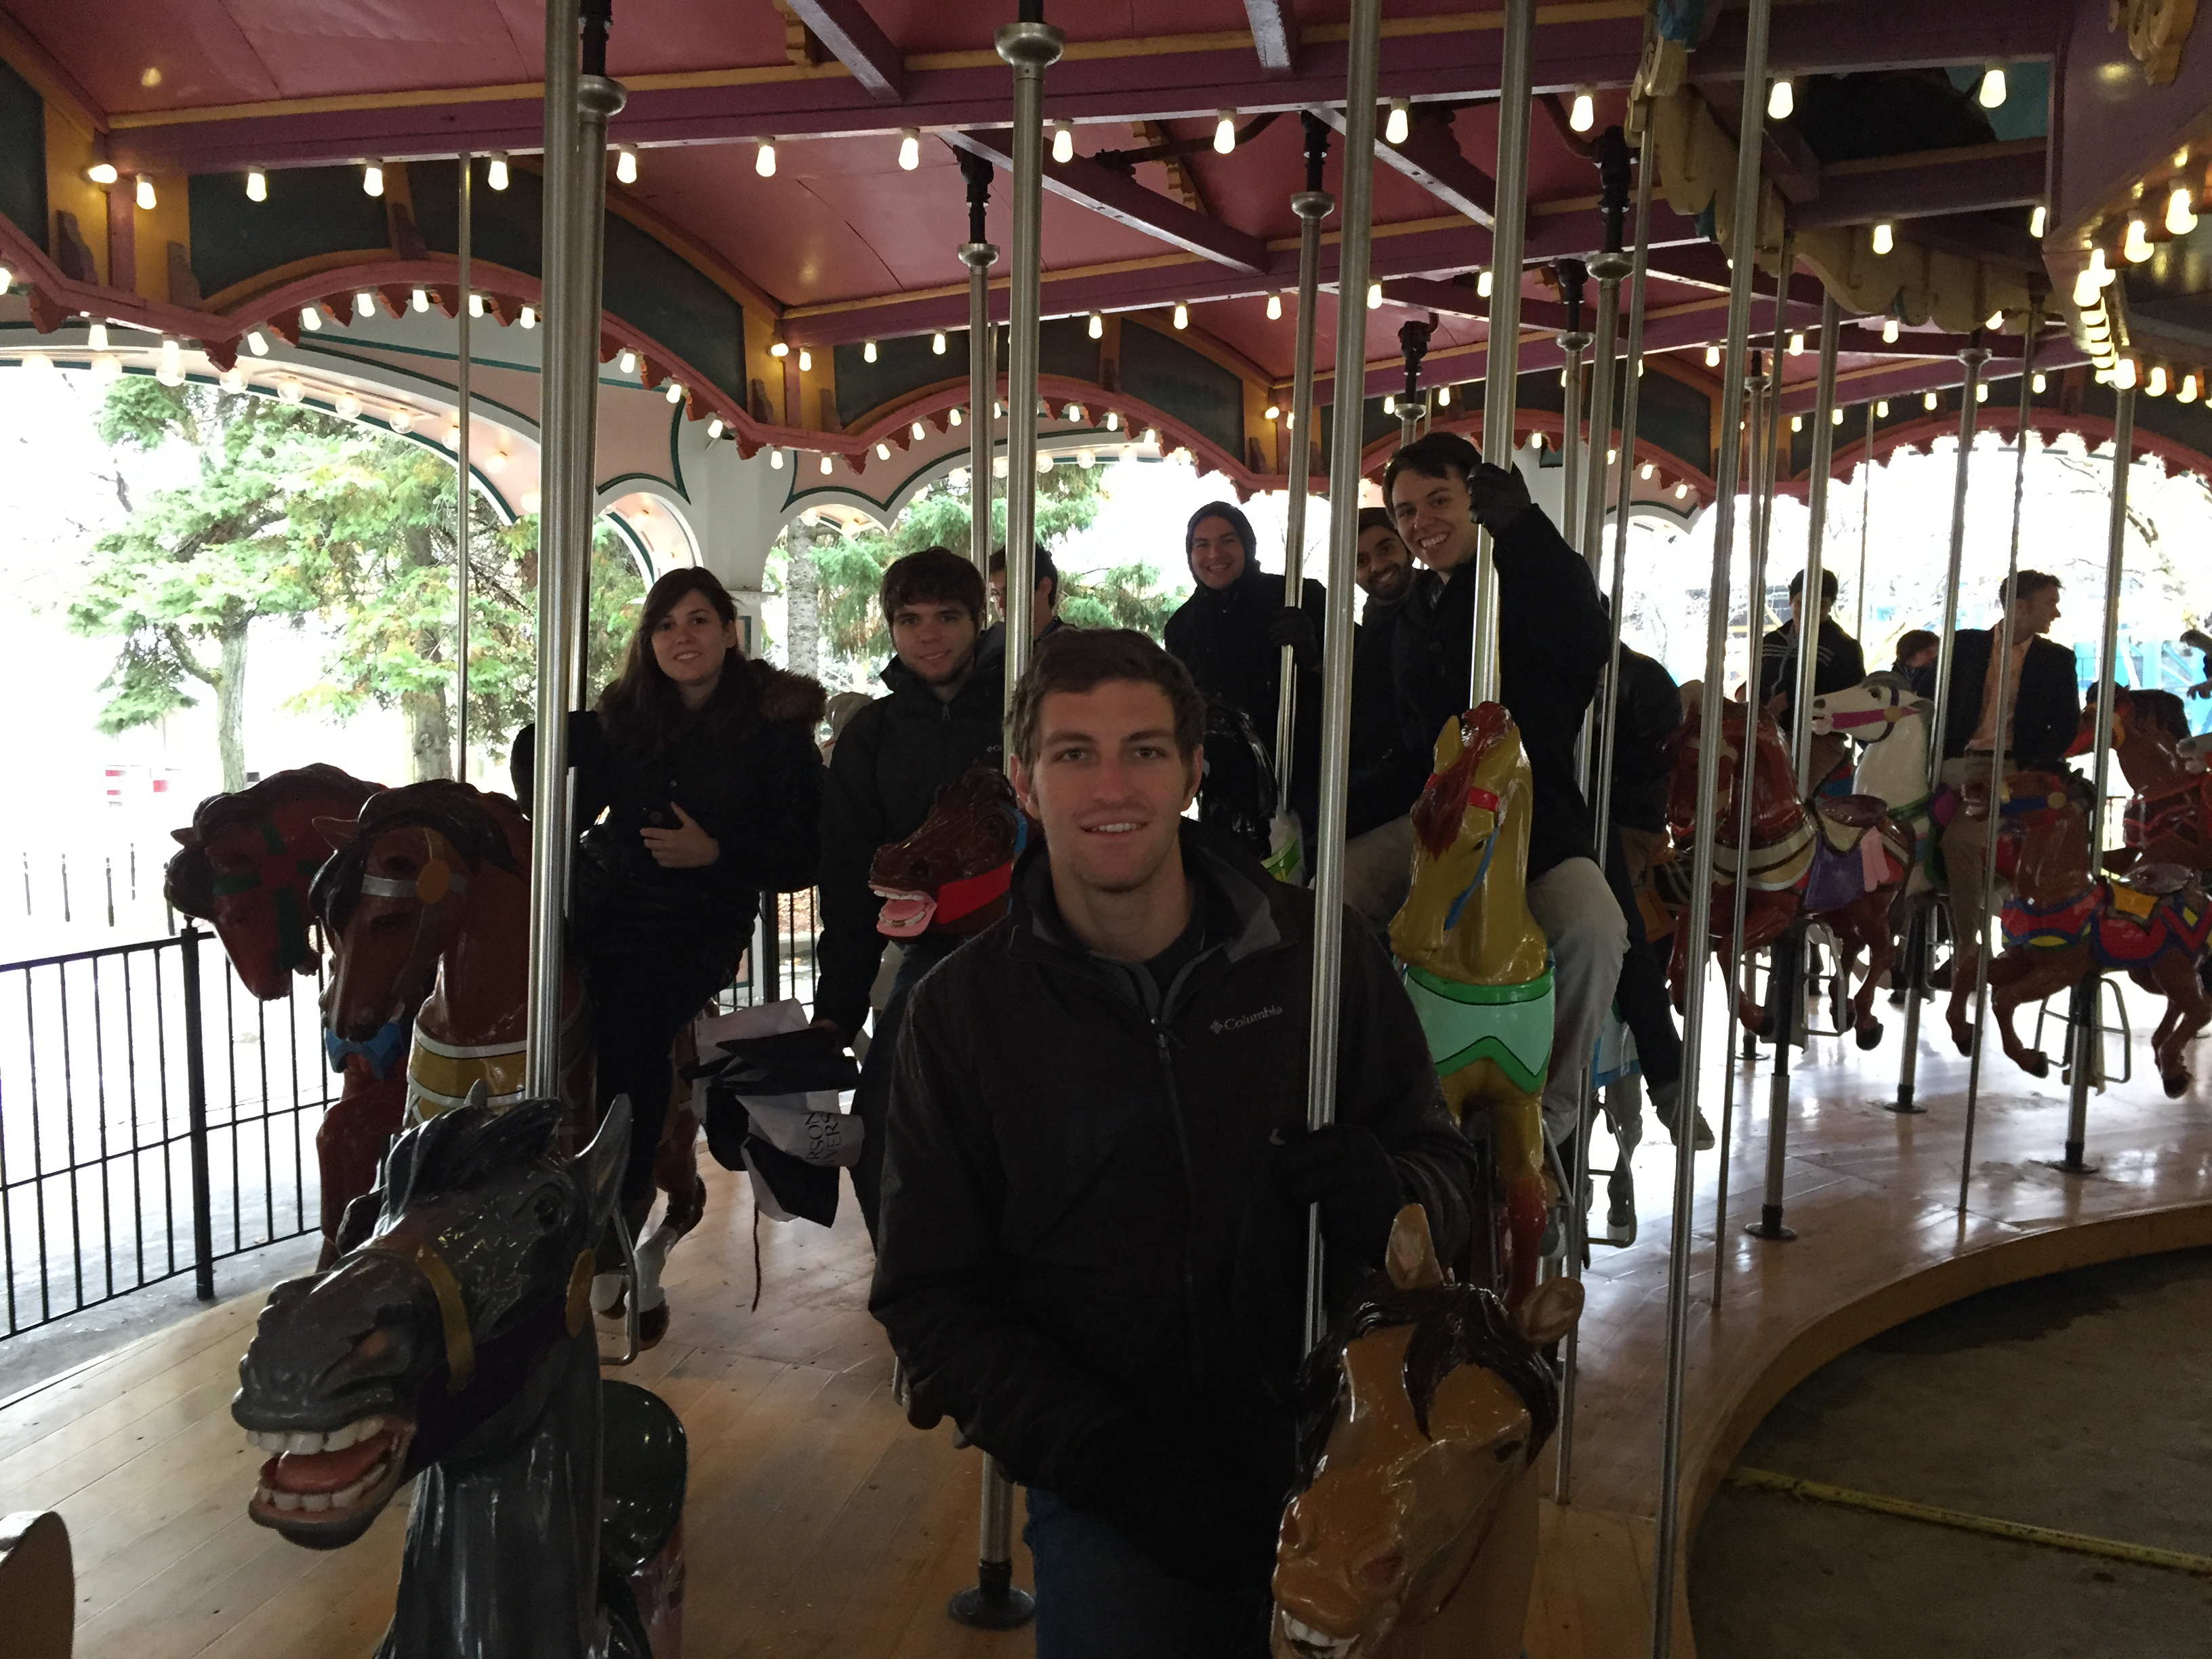 Riding a Carousel in Canada!